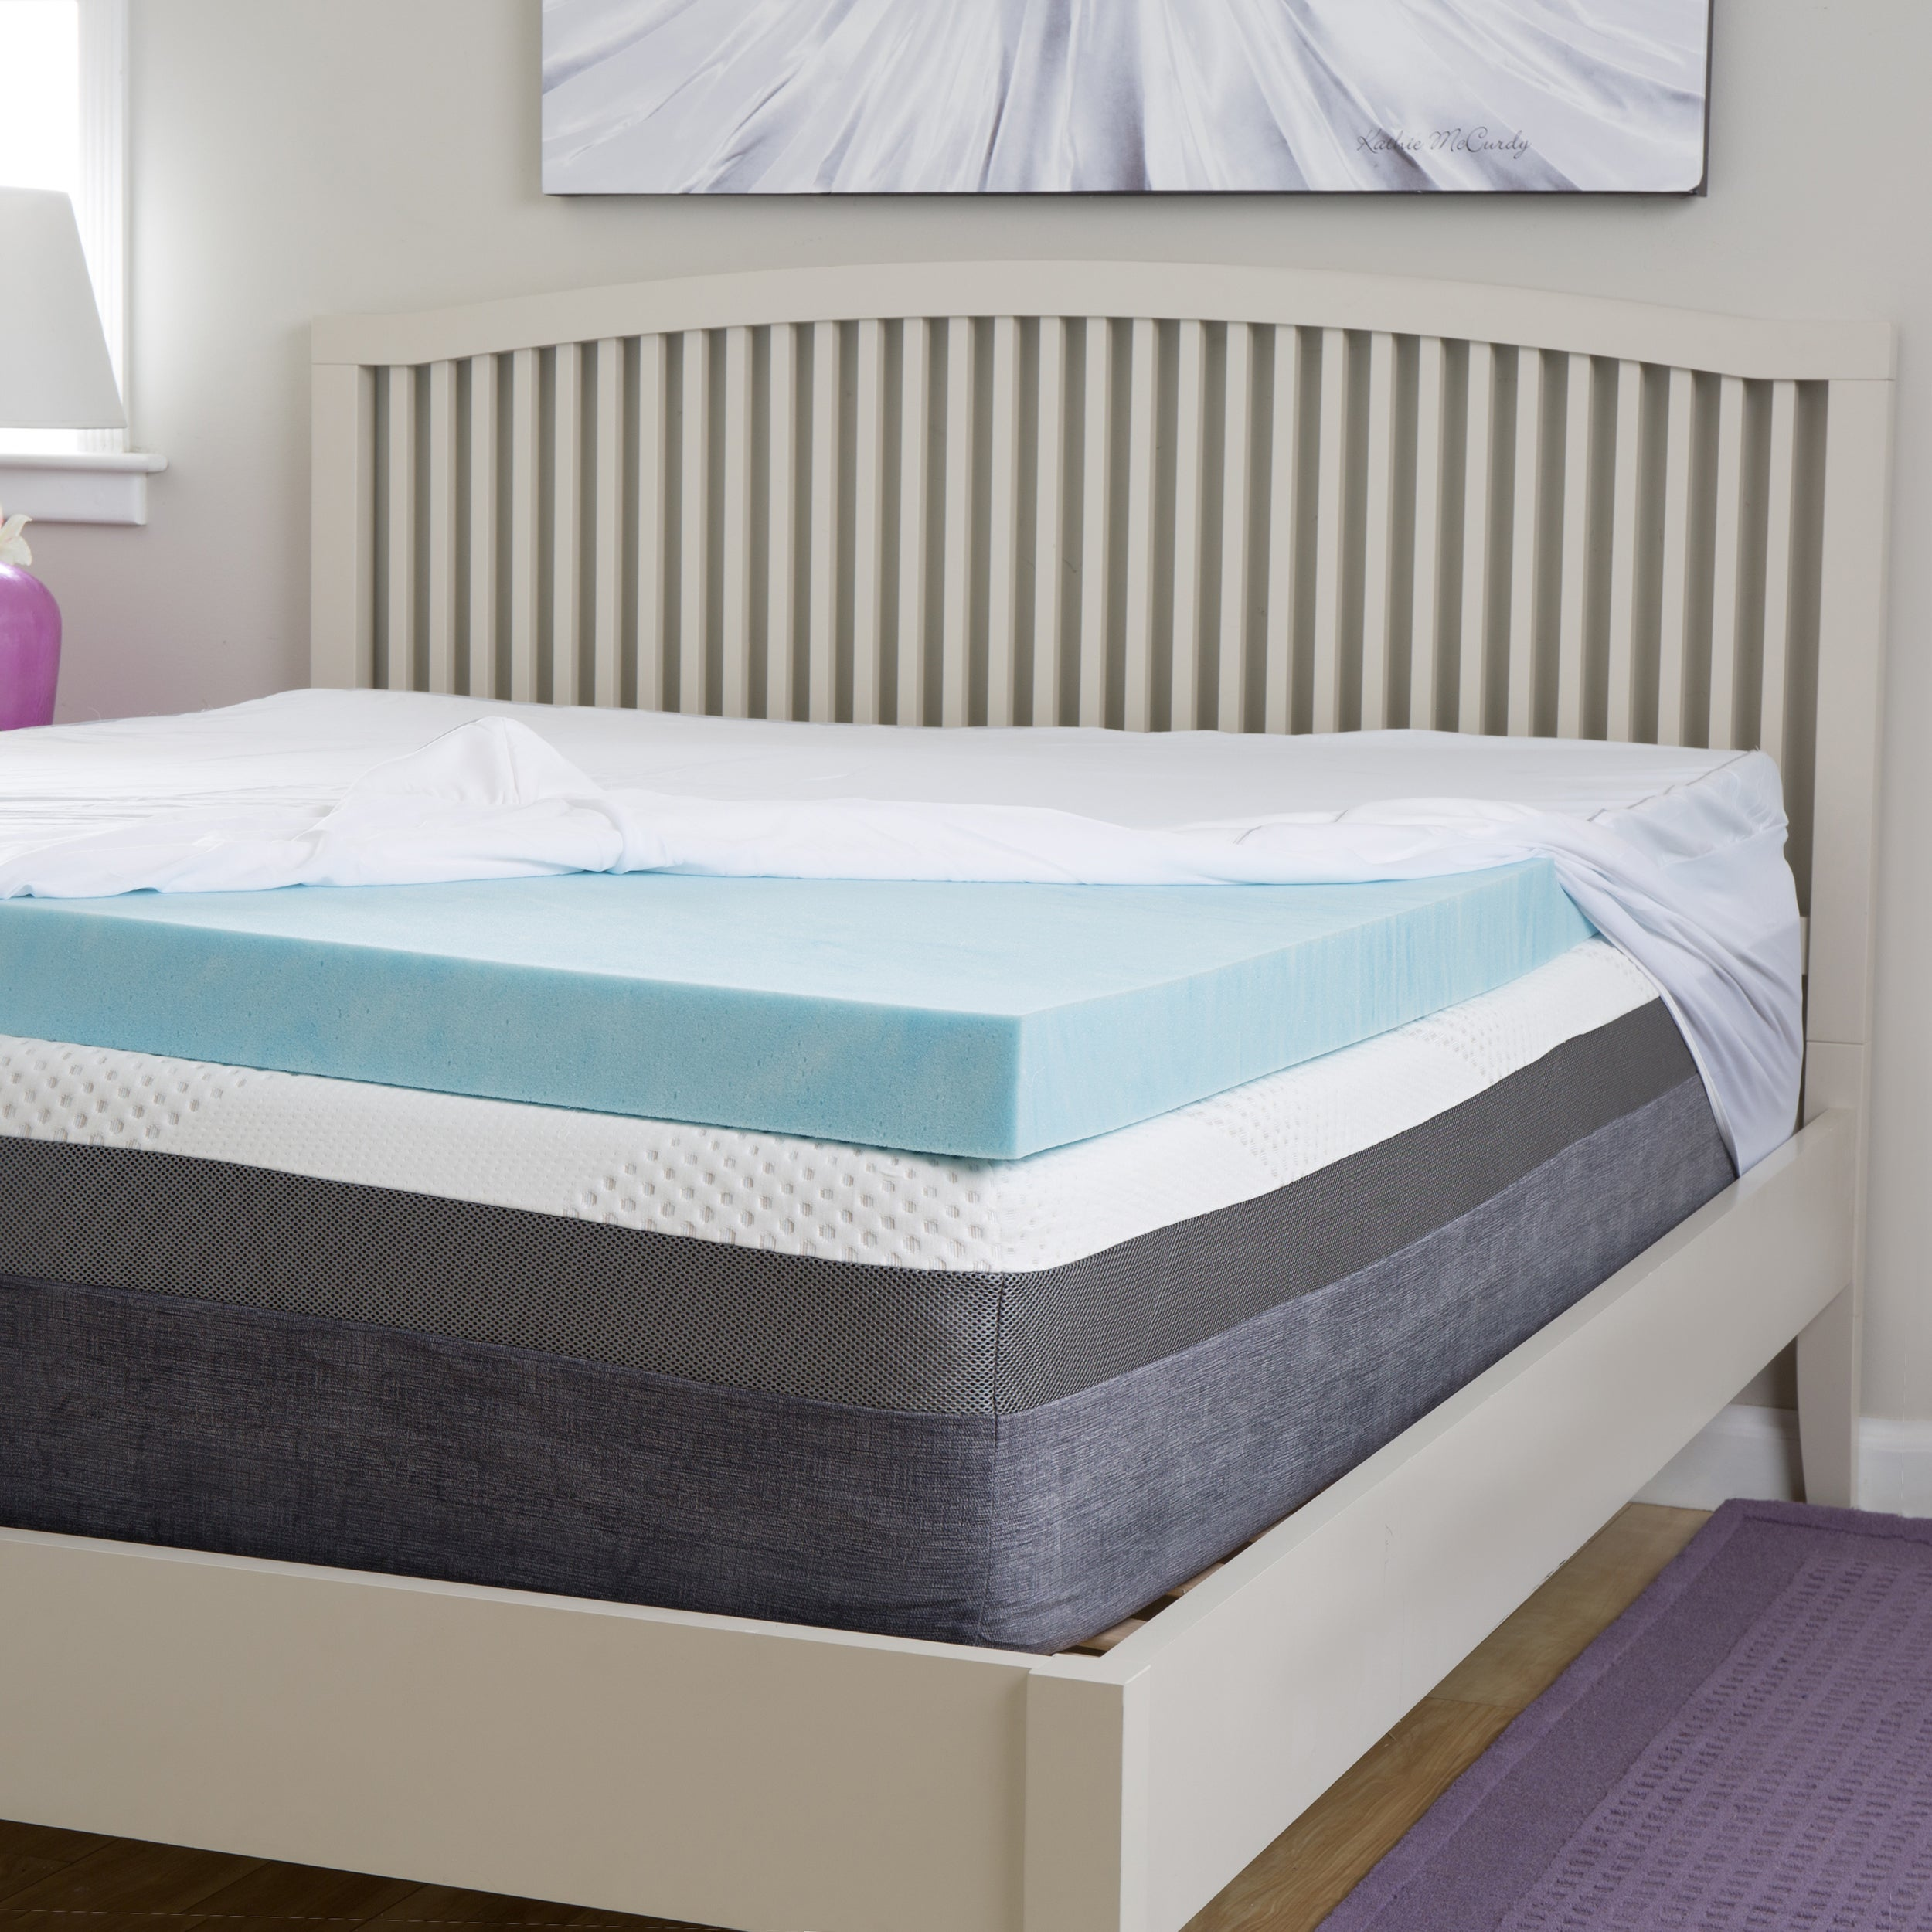 mattress products convoluted revolution white comfort lightbrown memory foam topper